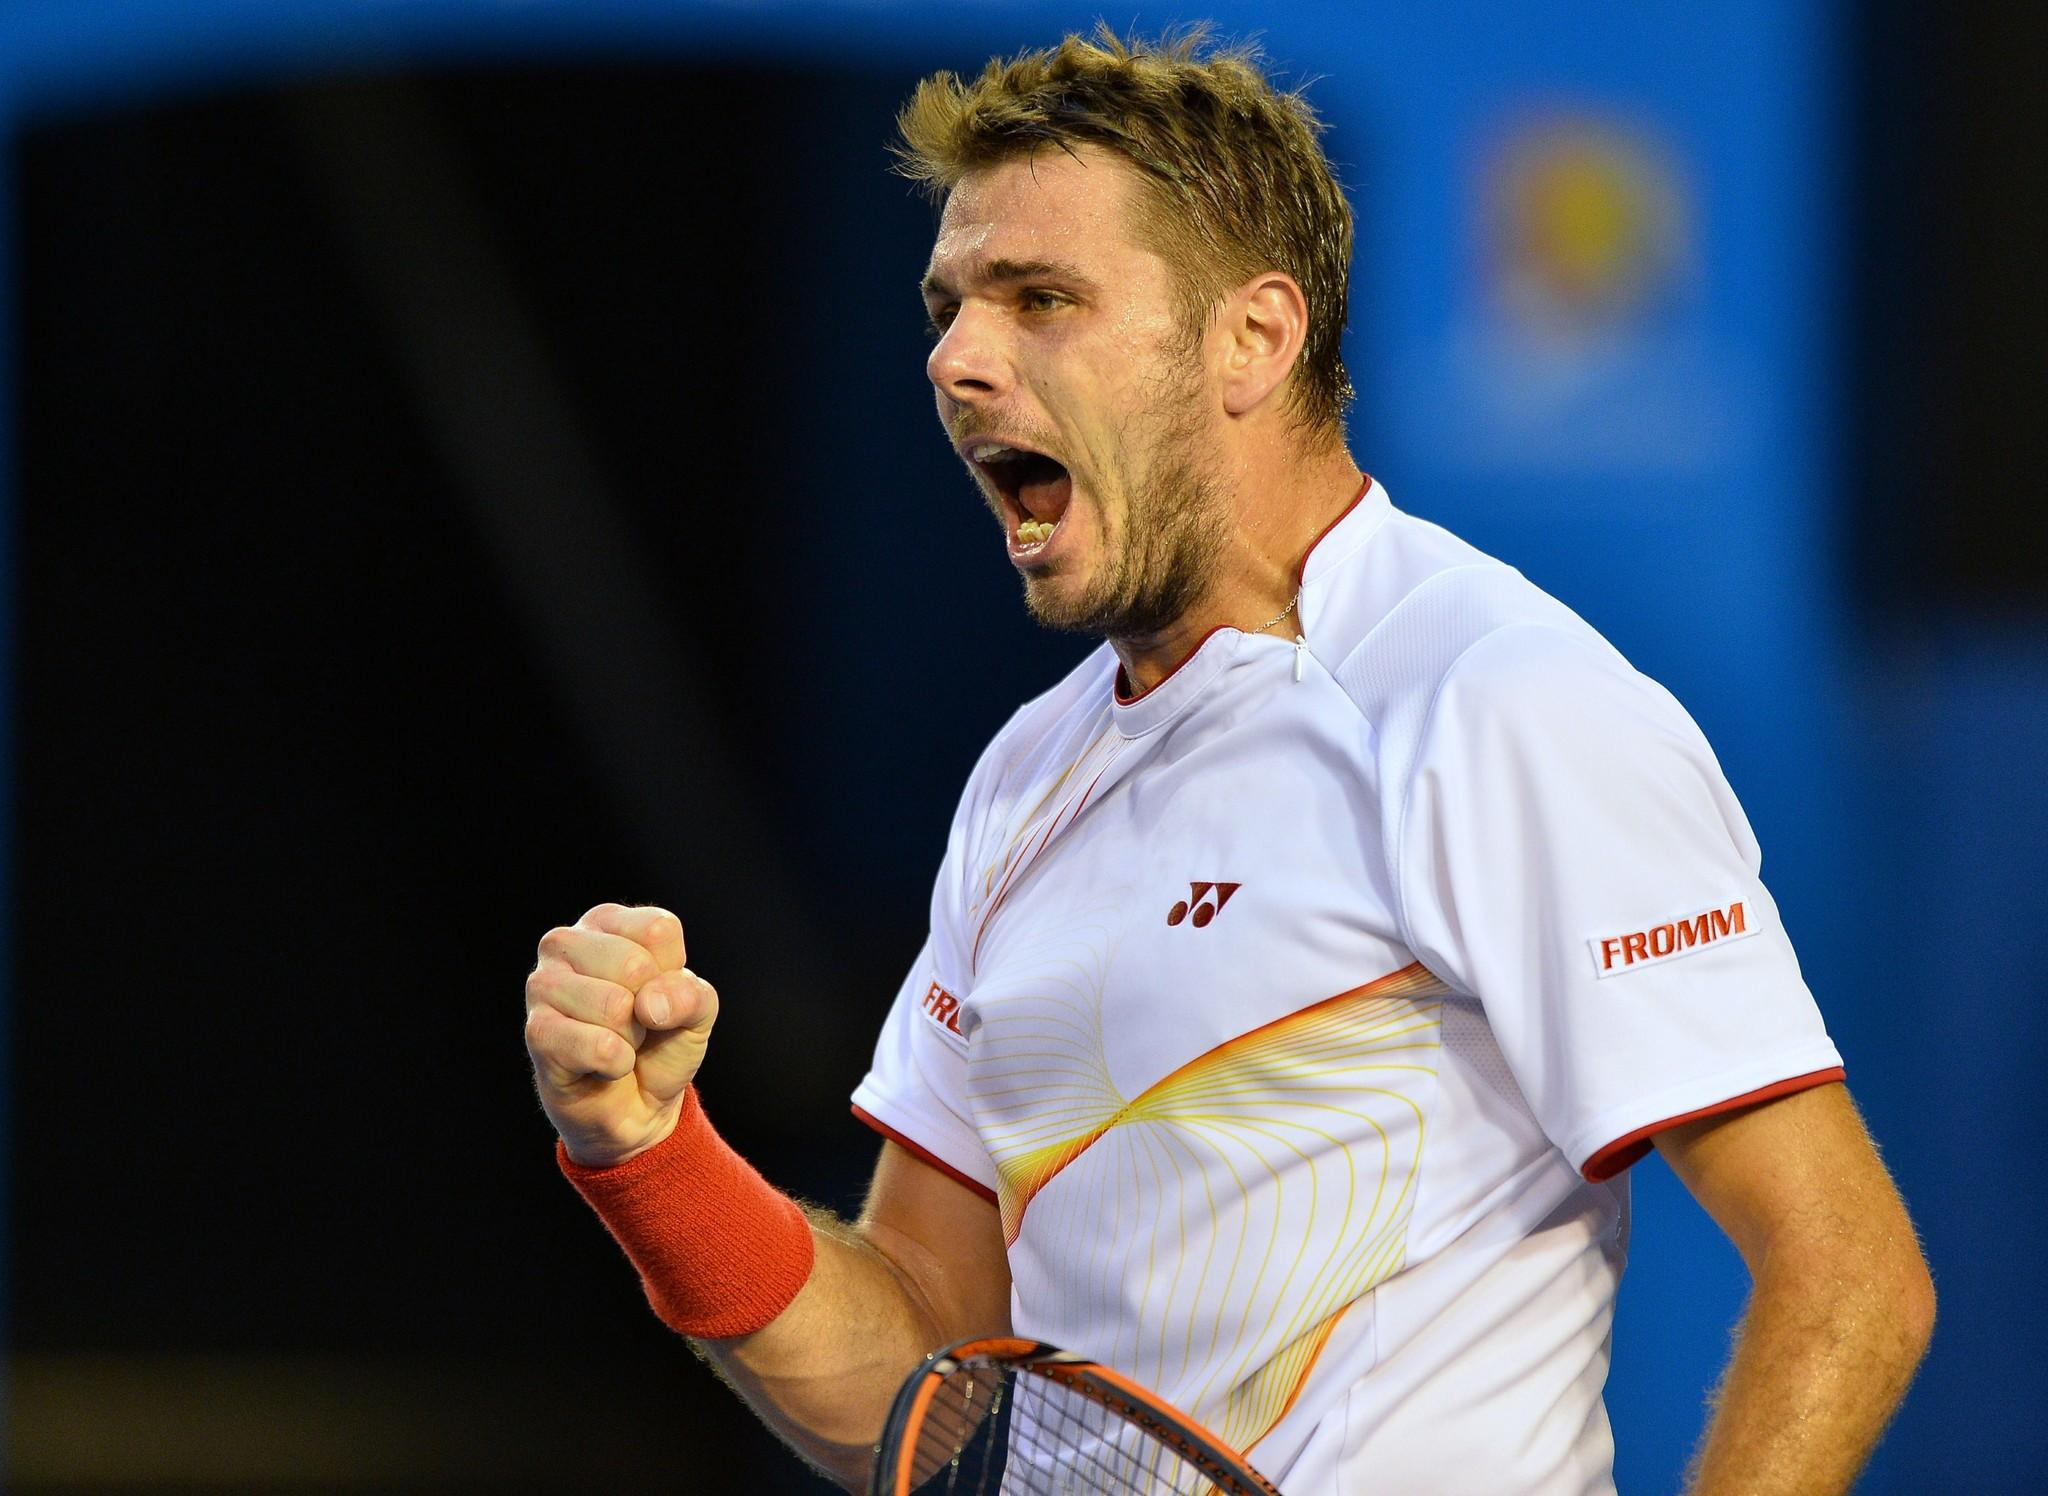 Switzerland's Stanislas Wawrinka reacts after a point against Spain's Rafael Nadal during the men's singles final.